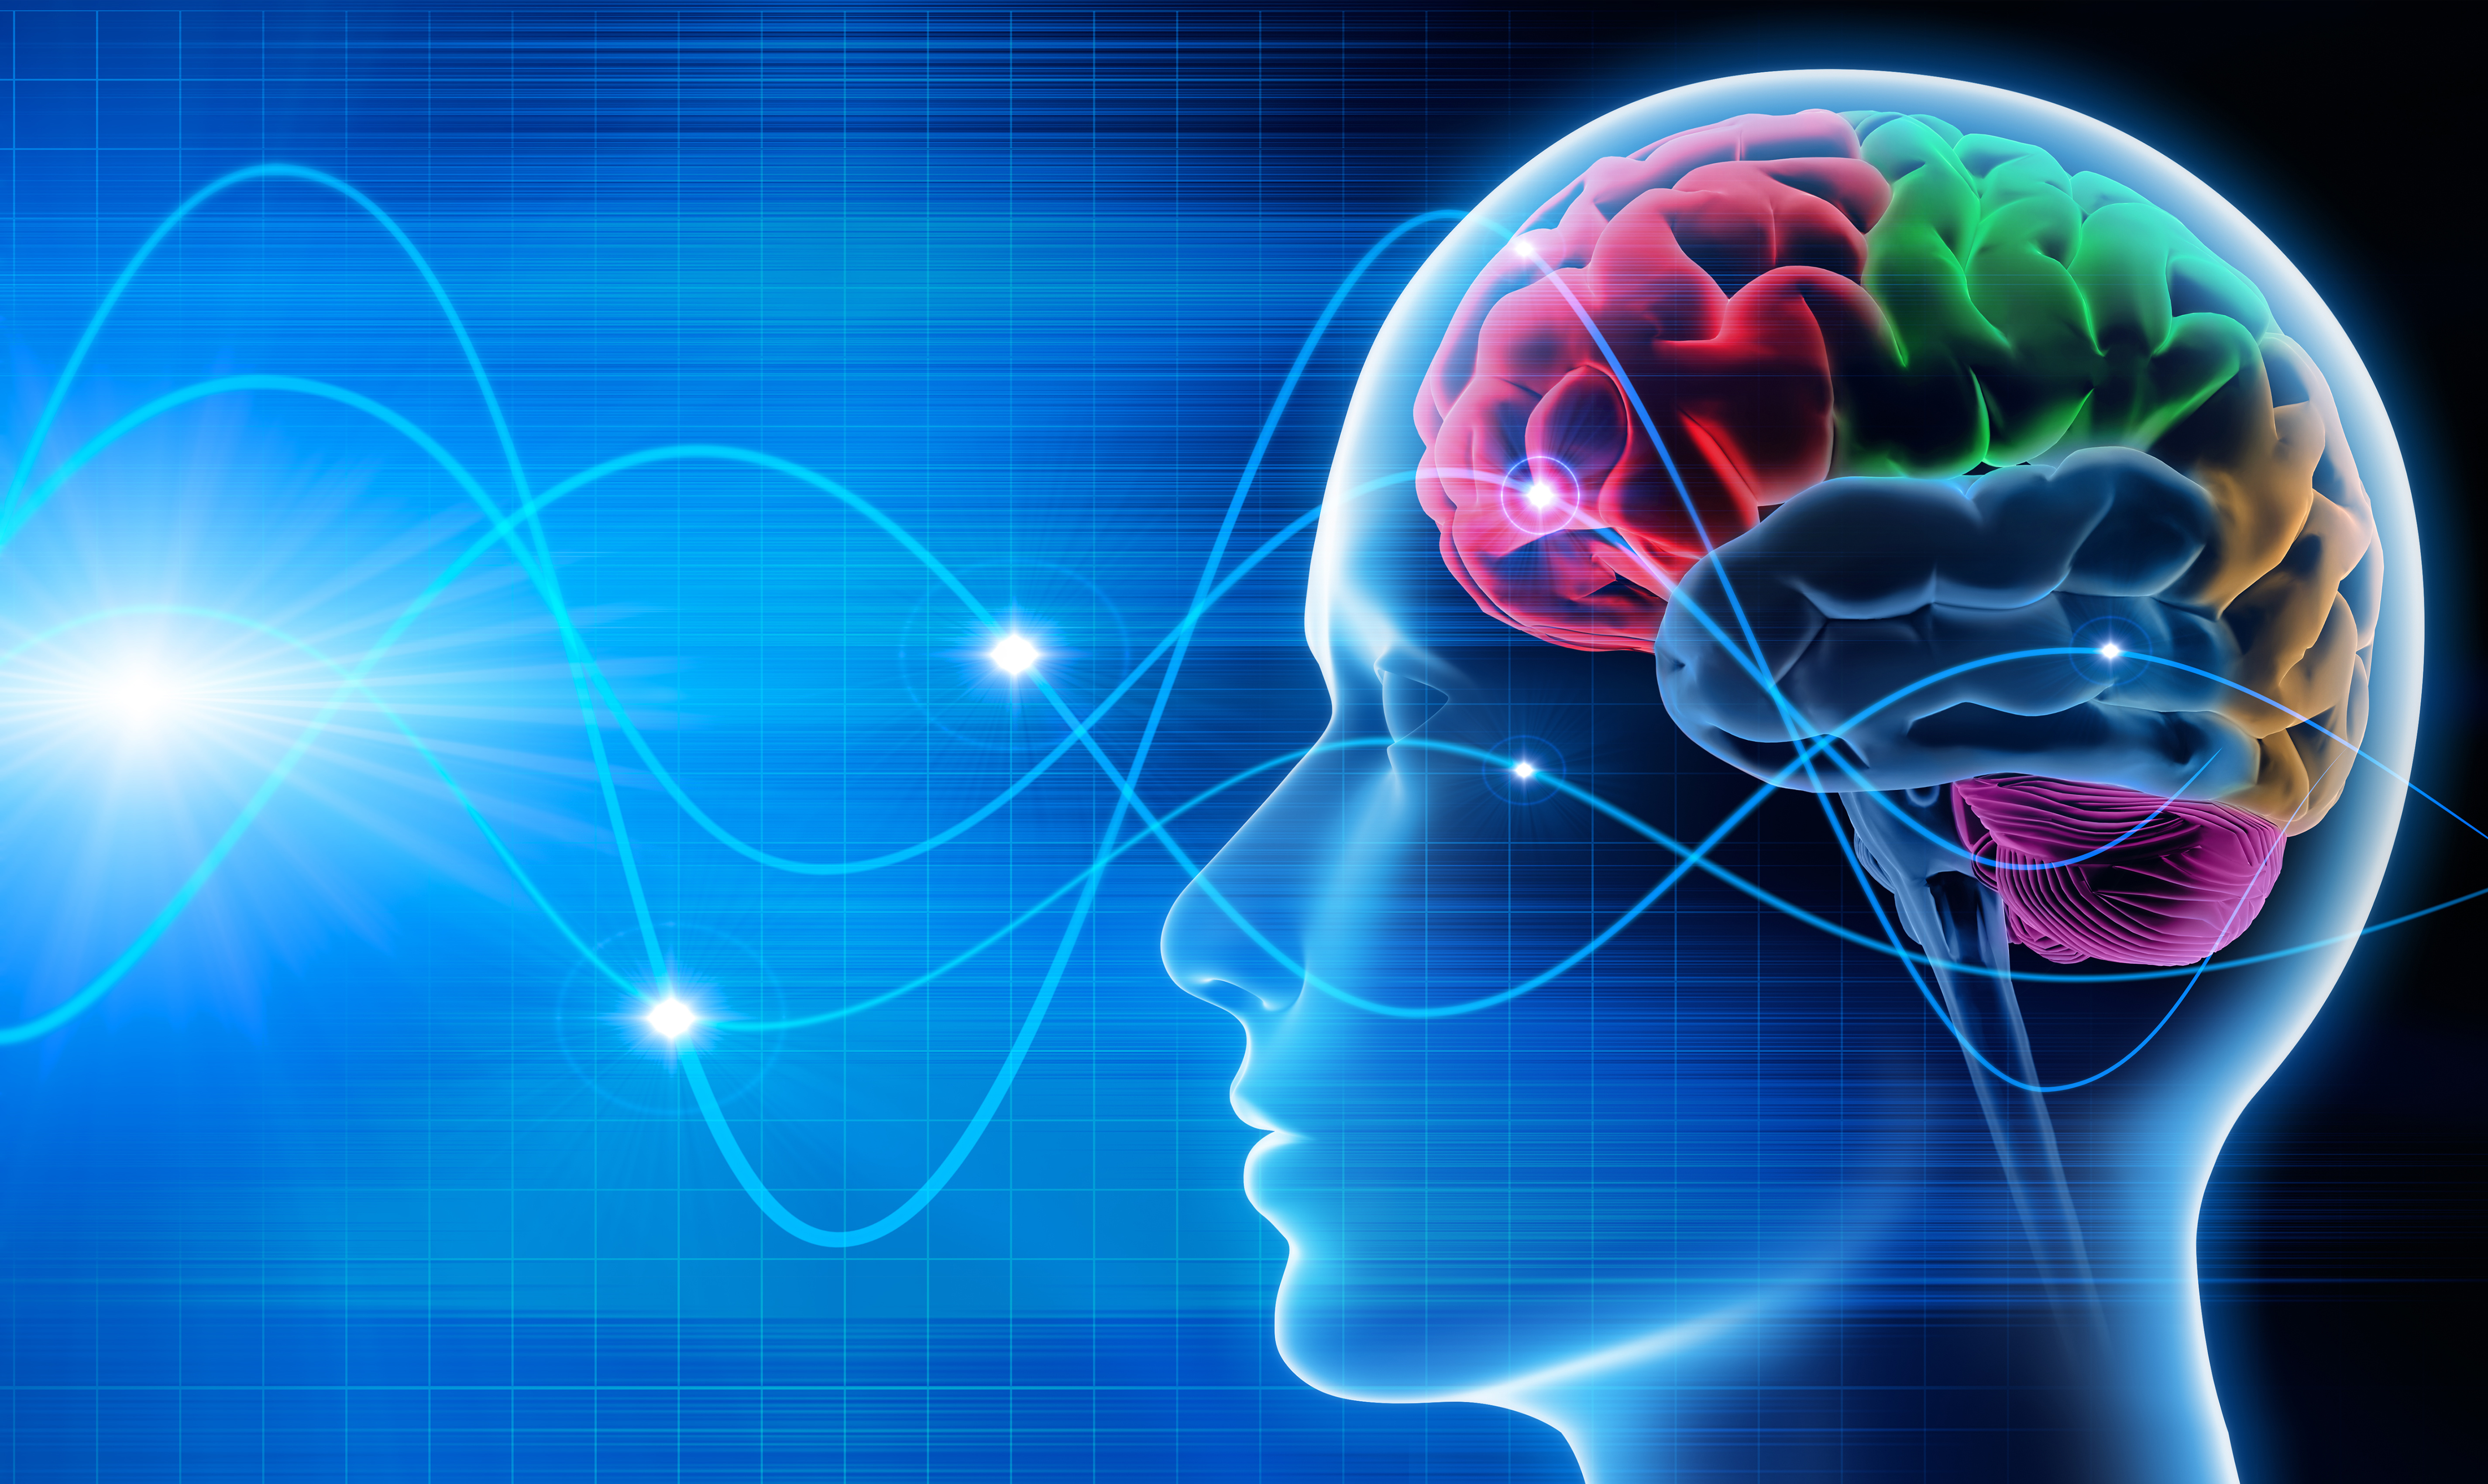 Brain, brain waves, 4 types of brainwaves, brain waves and yoga, brain waves and meditation